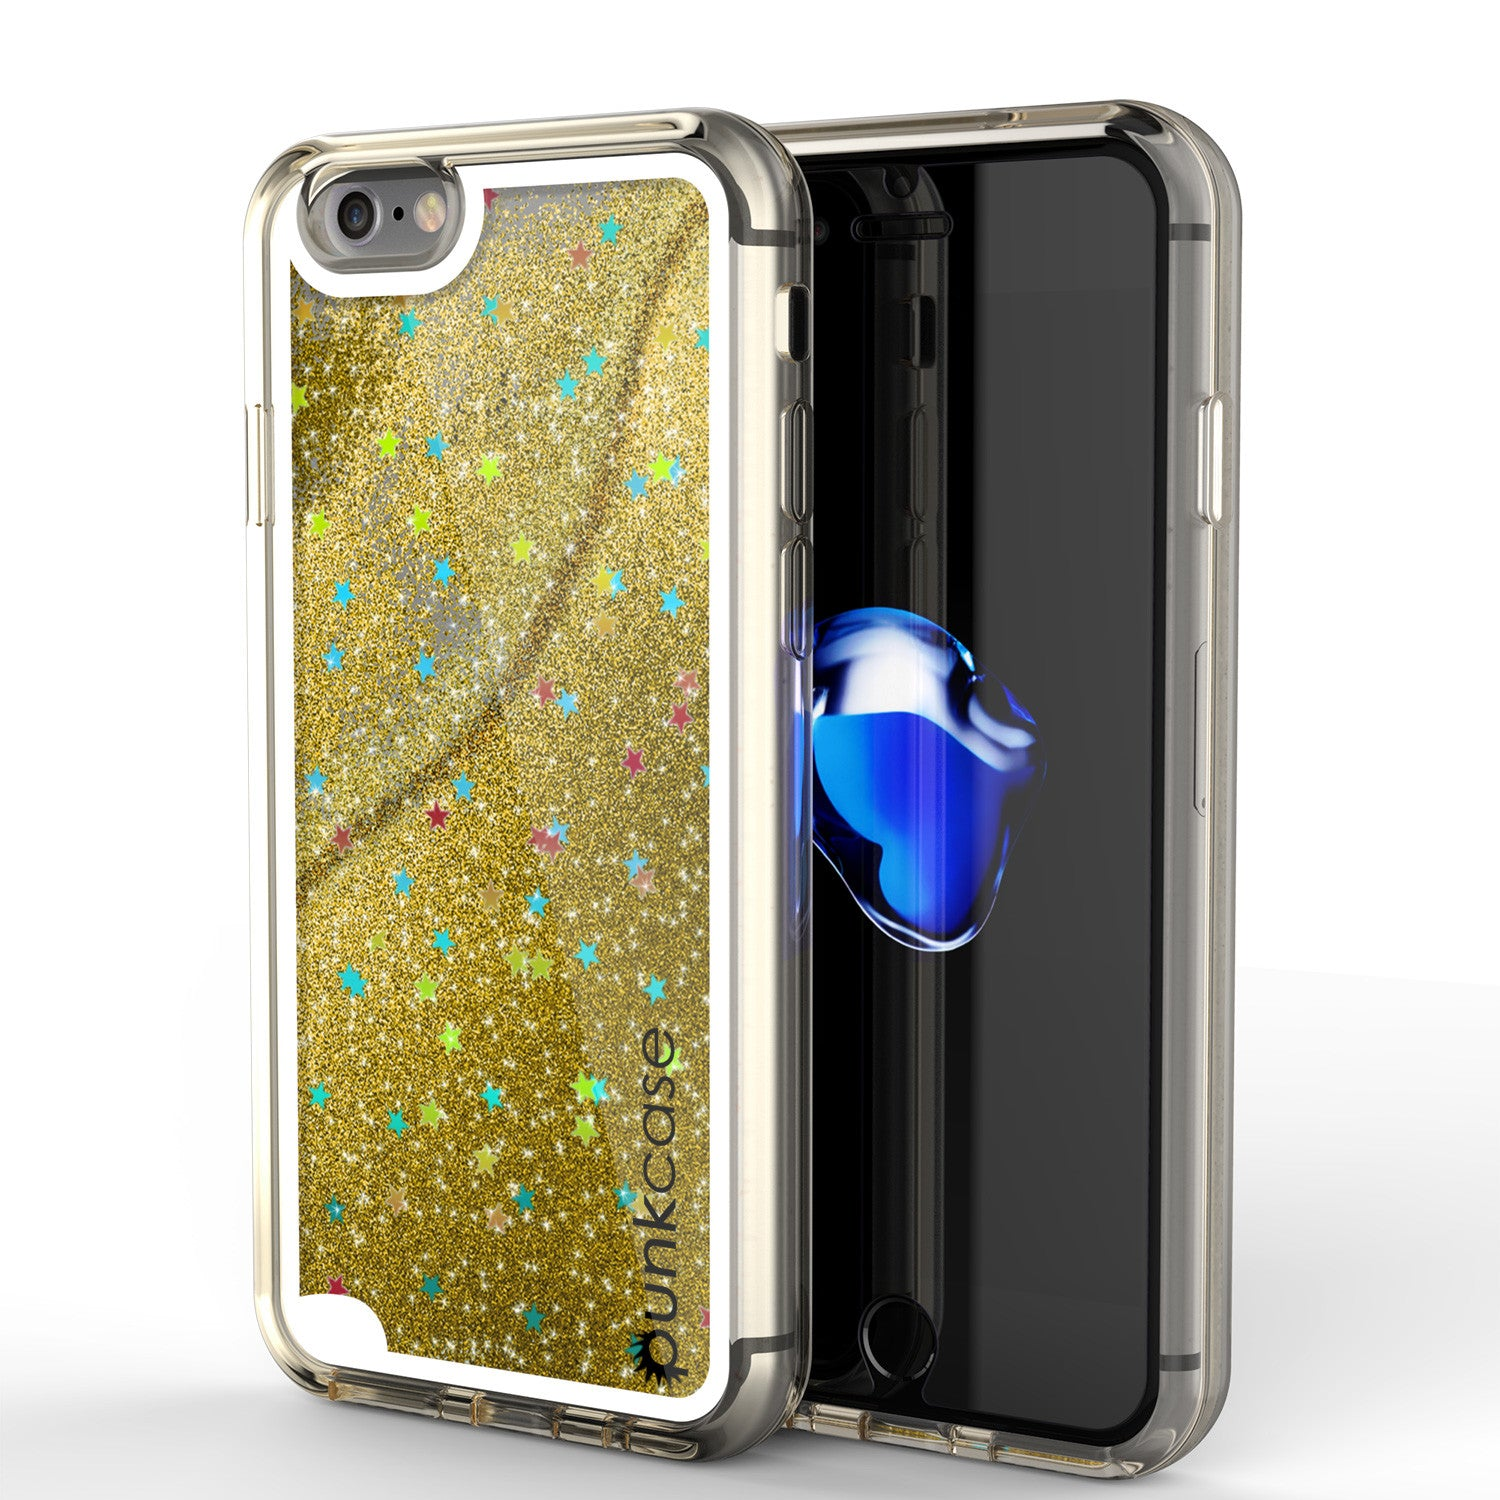 iPhone 7 Case, PunkCase LIQUID Gold Series, Protective Dual Layer Floating Glitter Cover